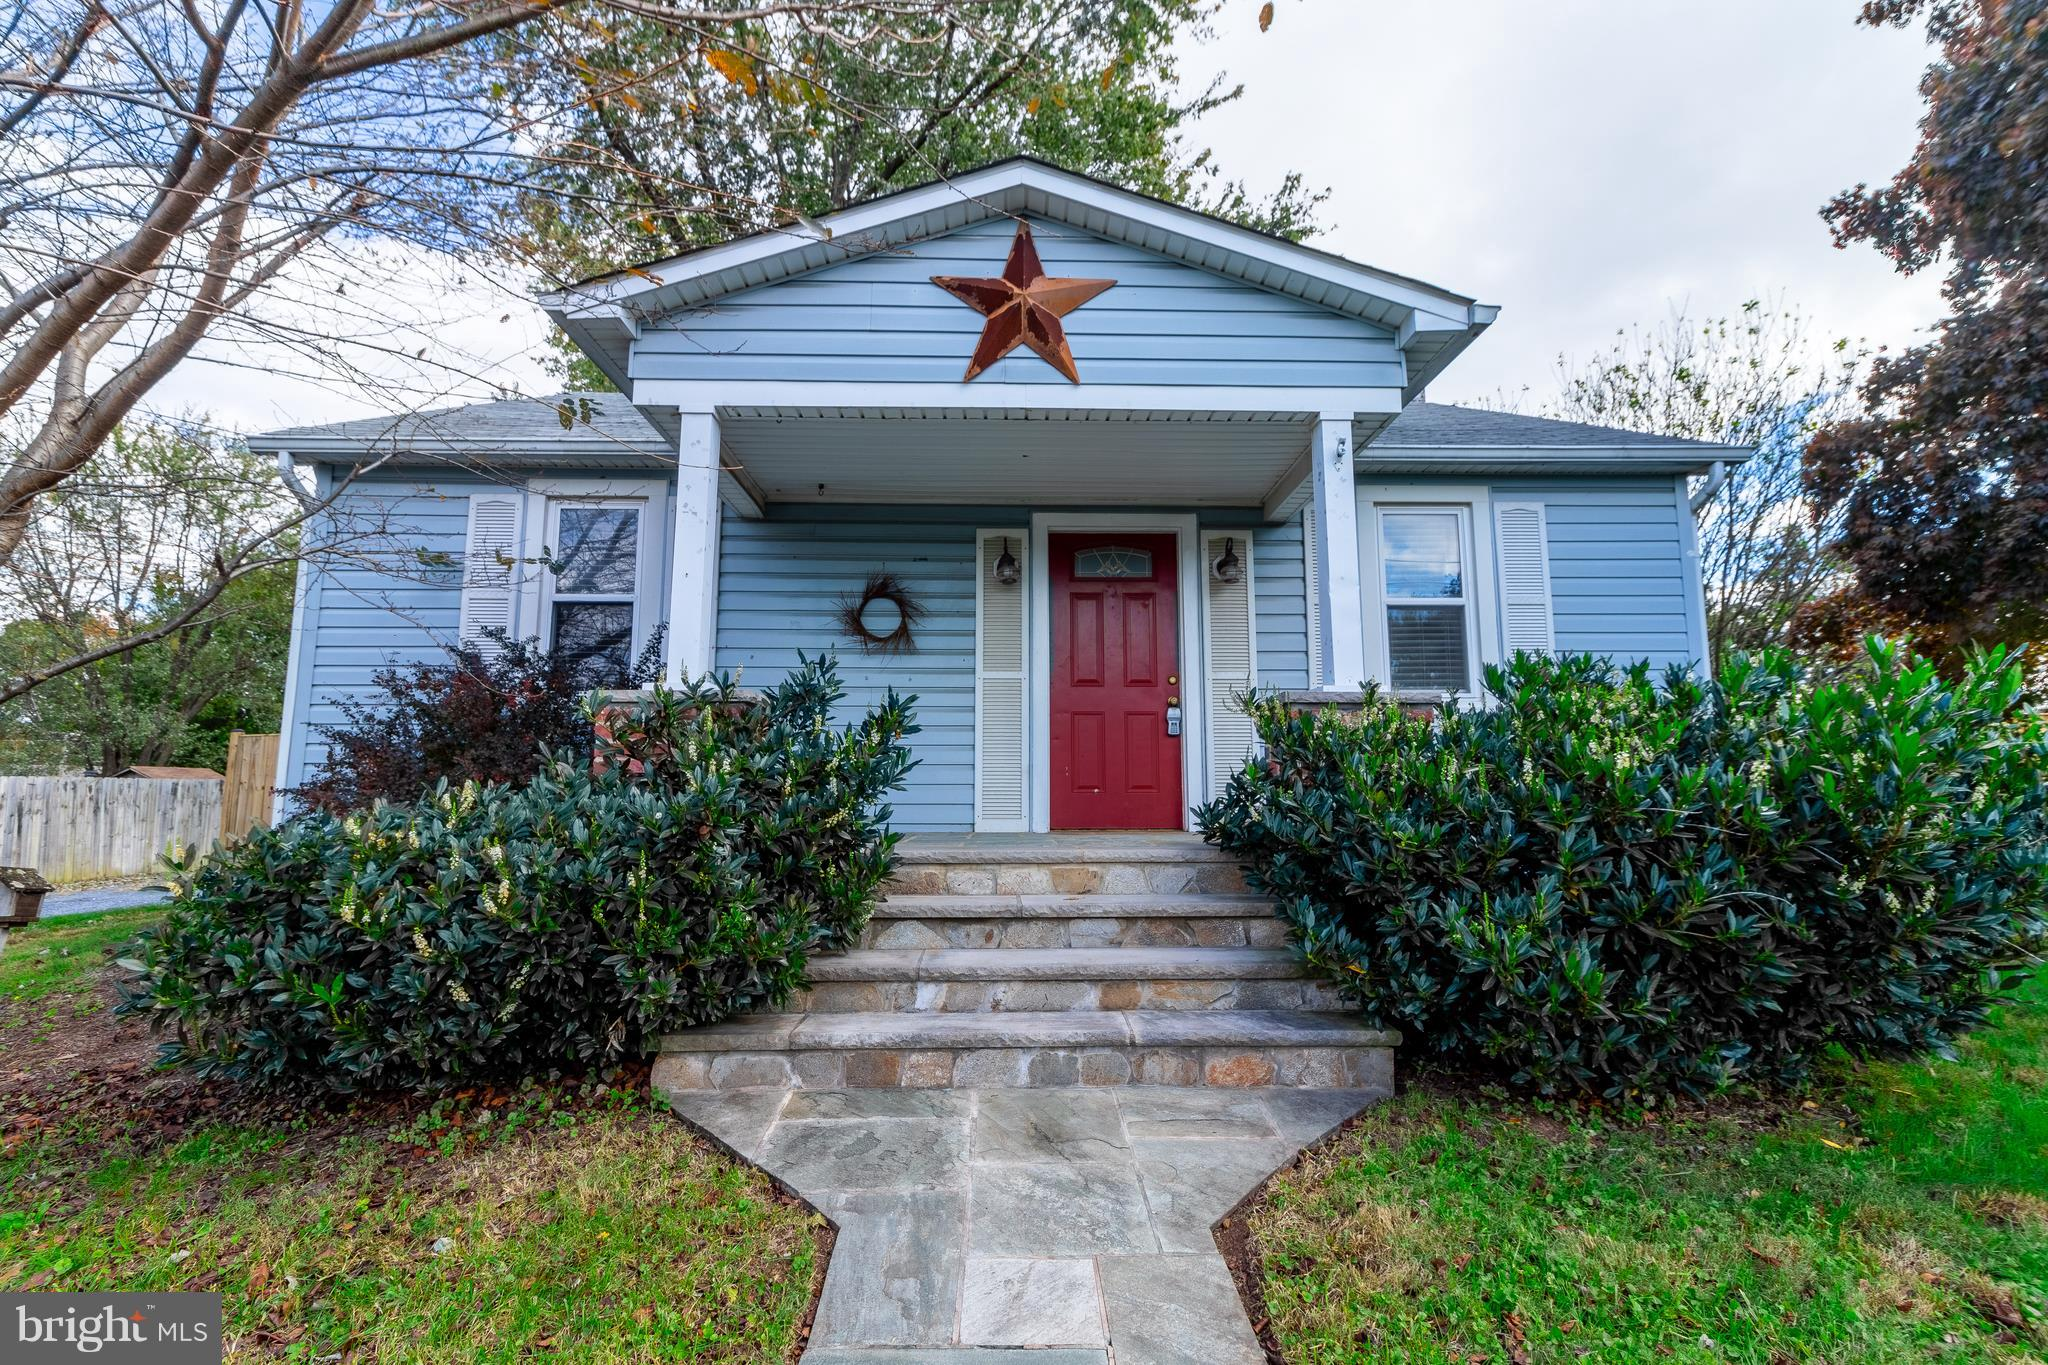 Single family home at a townhouse price.. Come see this adorable 2 bedroom rancher with garage.. Kit